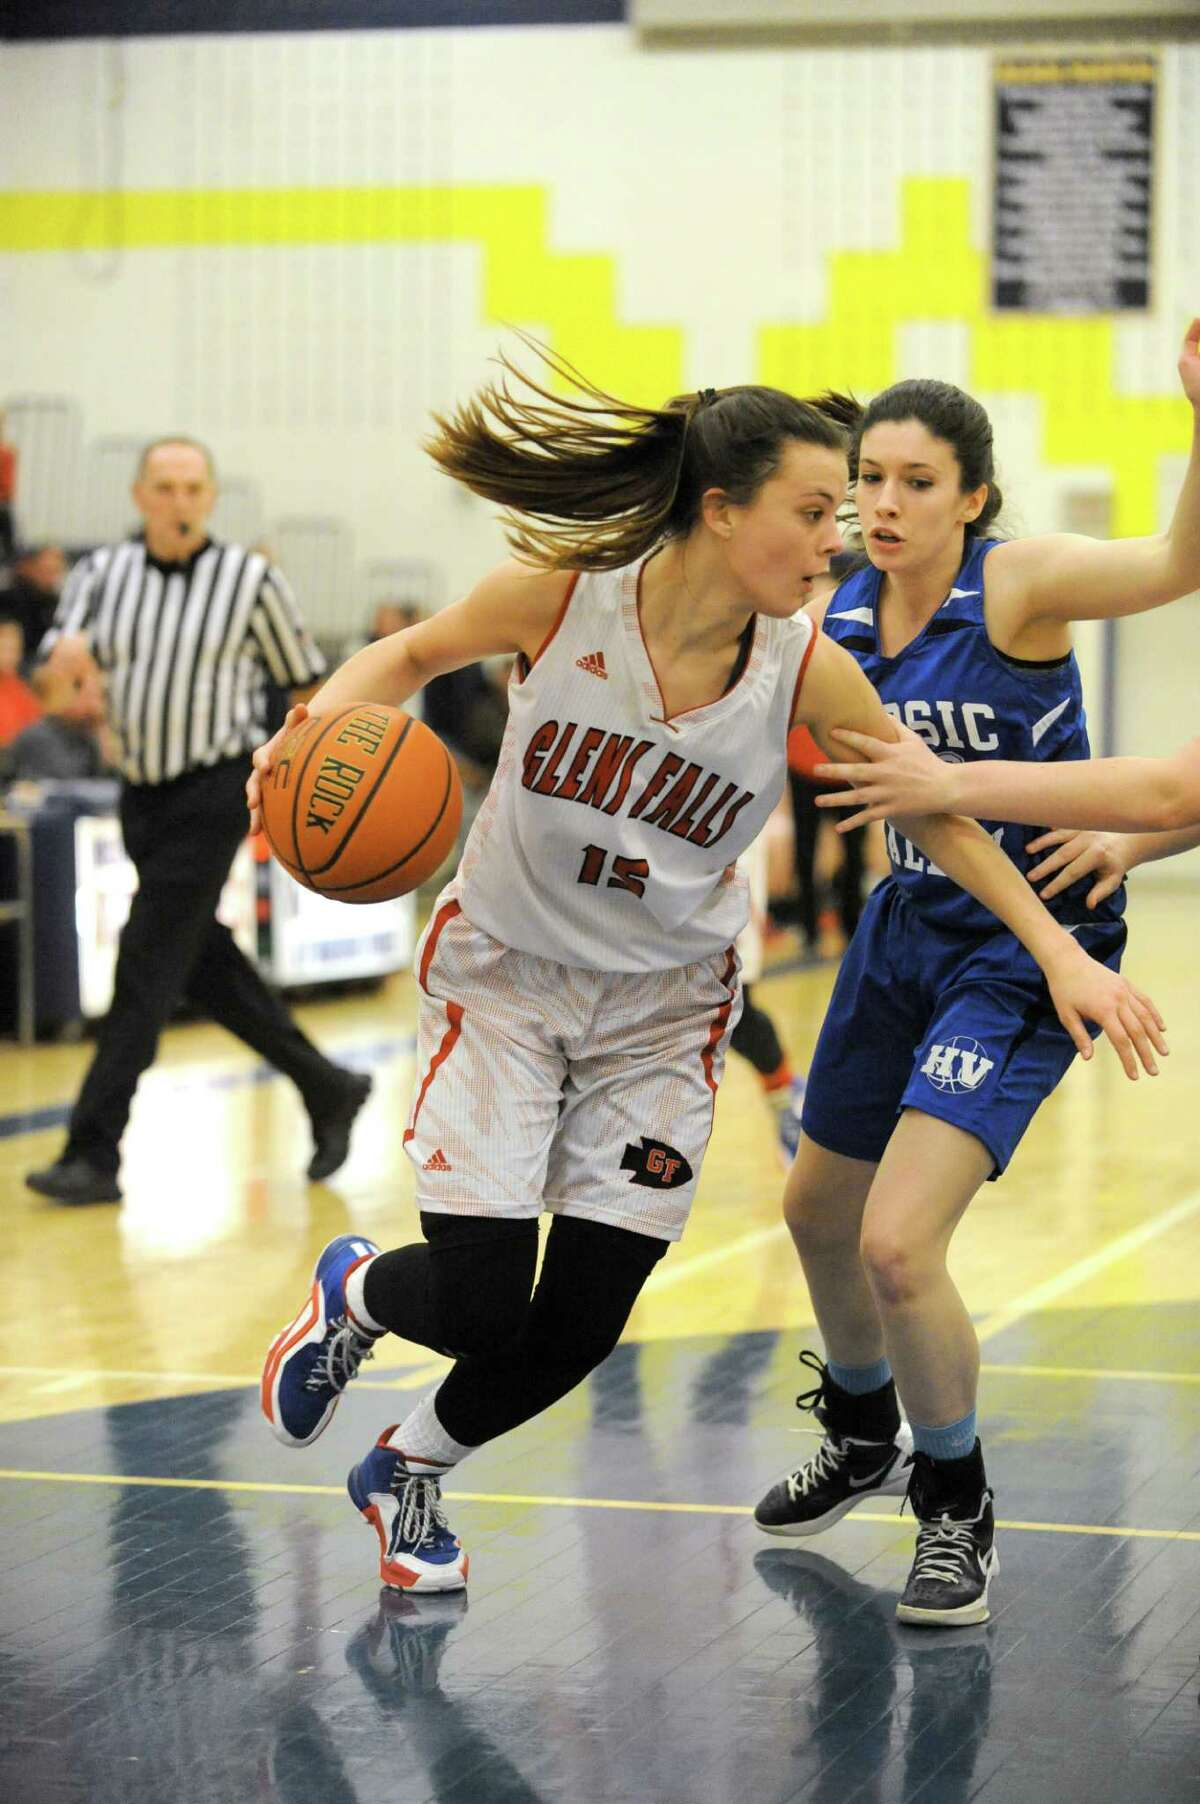 Glens Falls Sophie Tougas drives to the basket during their Class B girls' hoops semifinals game against Hoosic Valley on Wednesday Feb. 24, 2016 in Averill Park, N.Y. (Michael P. Farrell/Times Union)